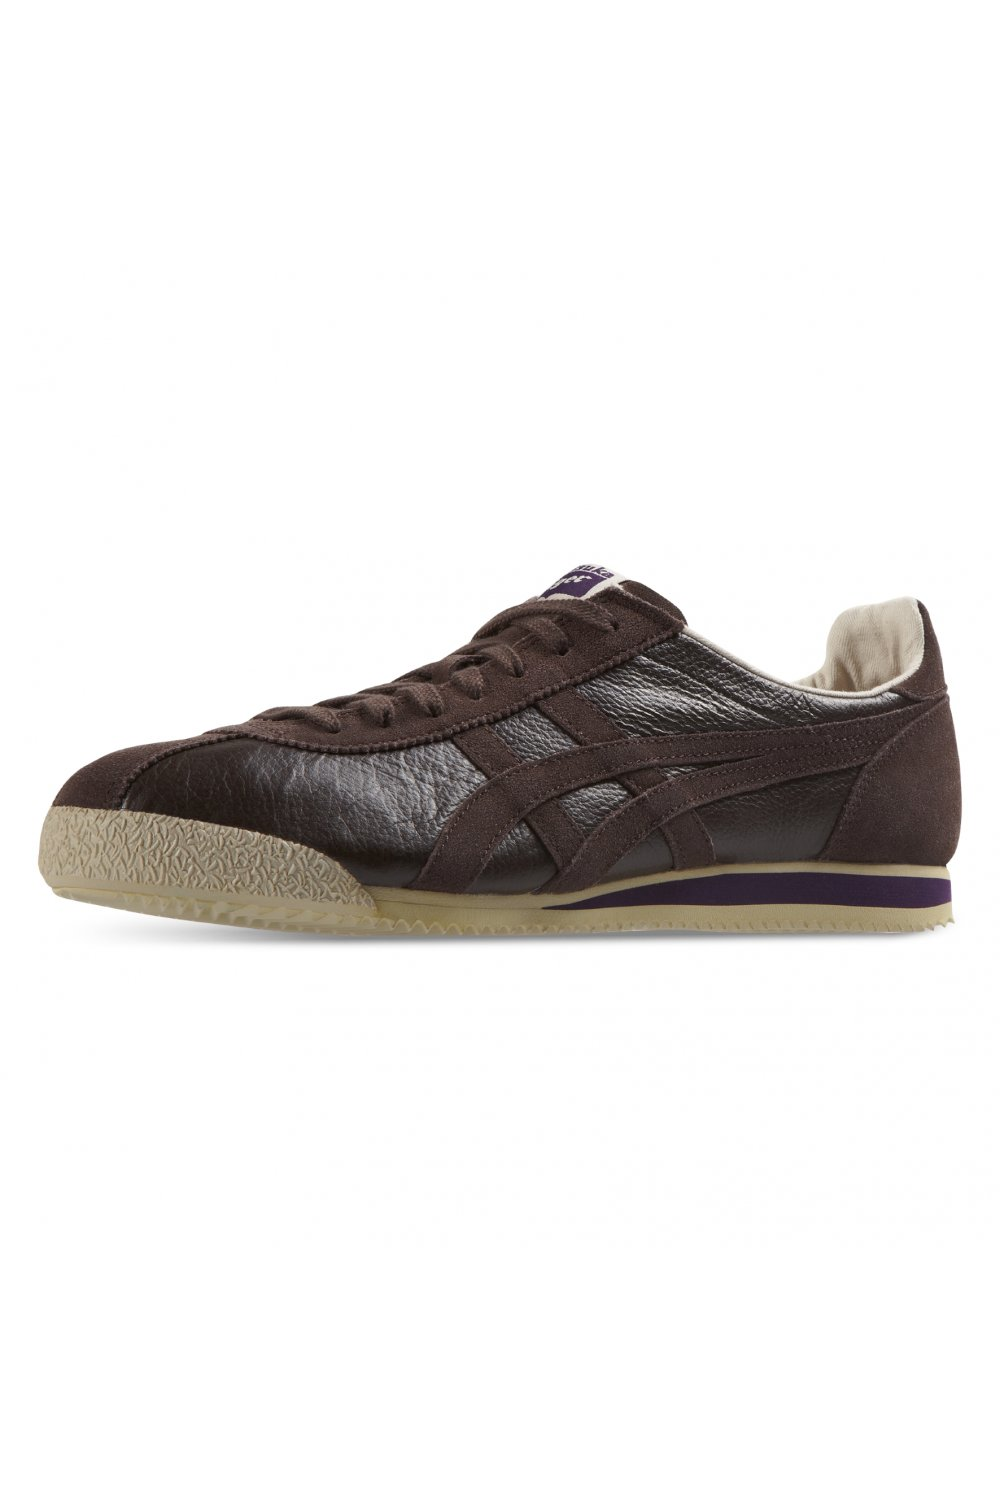 official photos 80471 9a728 Tiger Corsair VIN Trainers (Dark Brown/Dark Brown)